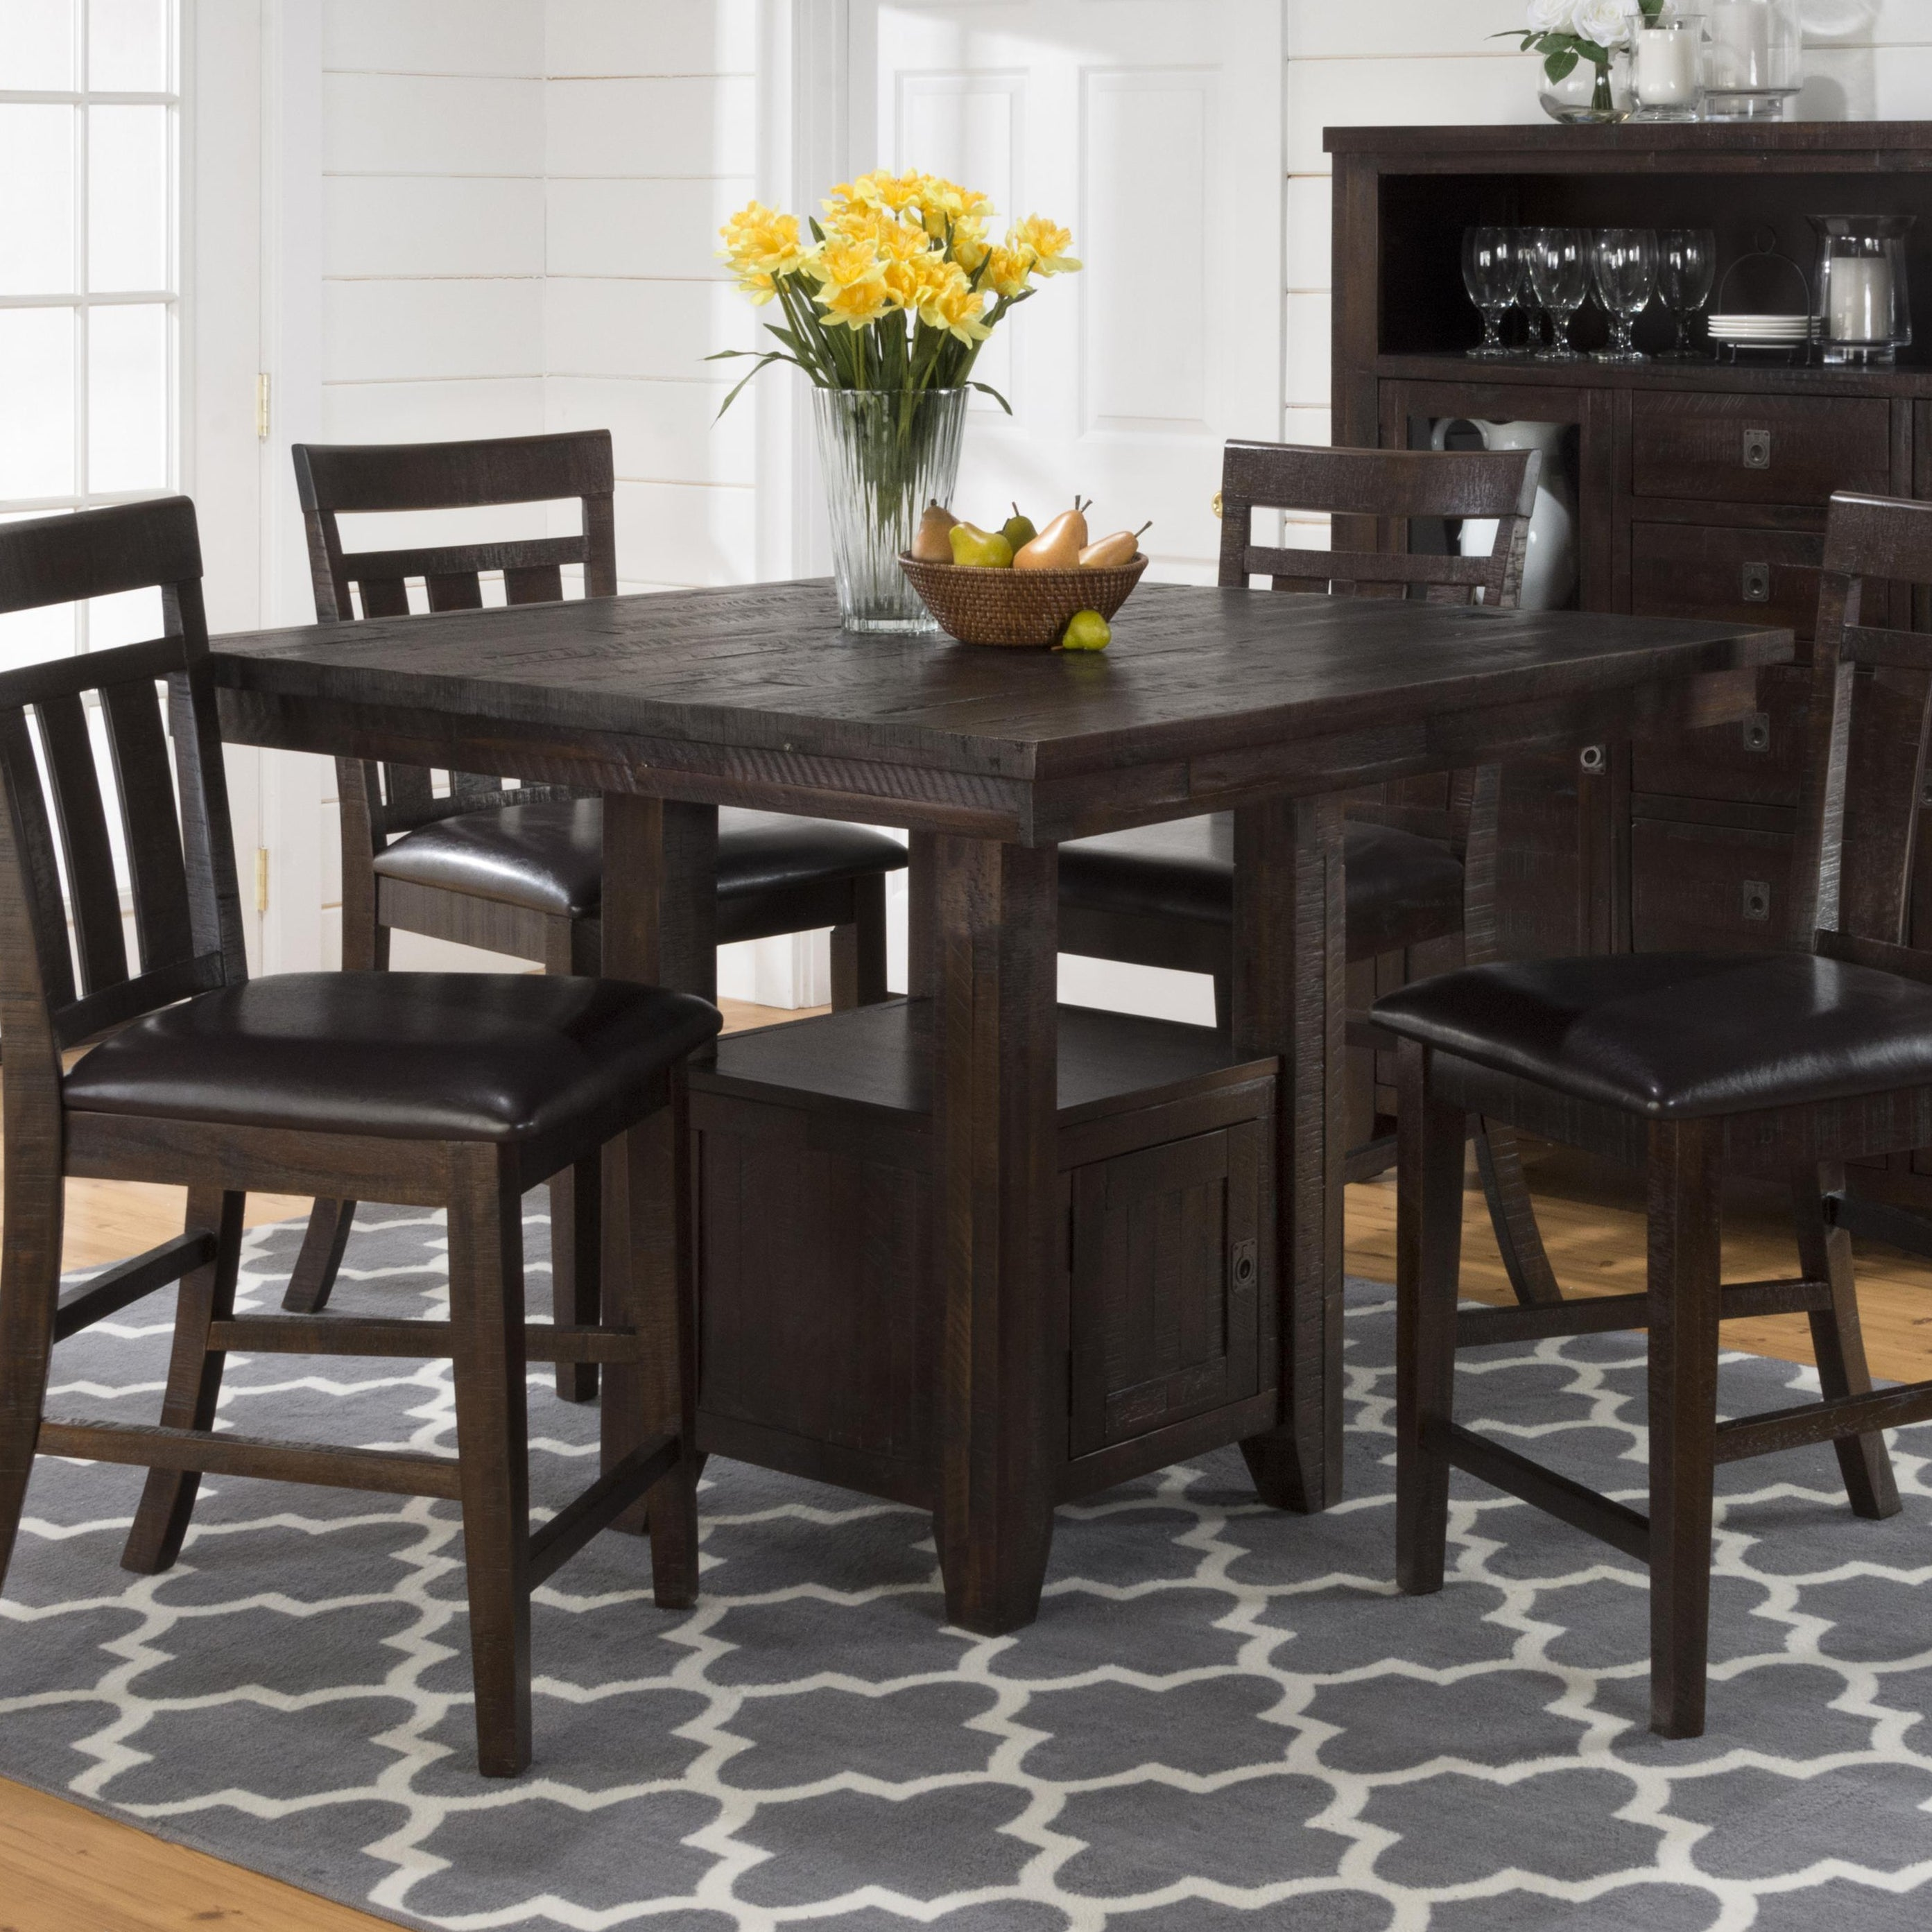 Kona Grove Counter Height - Lifestyle Furniture